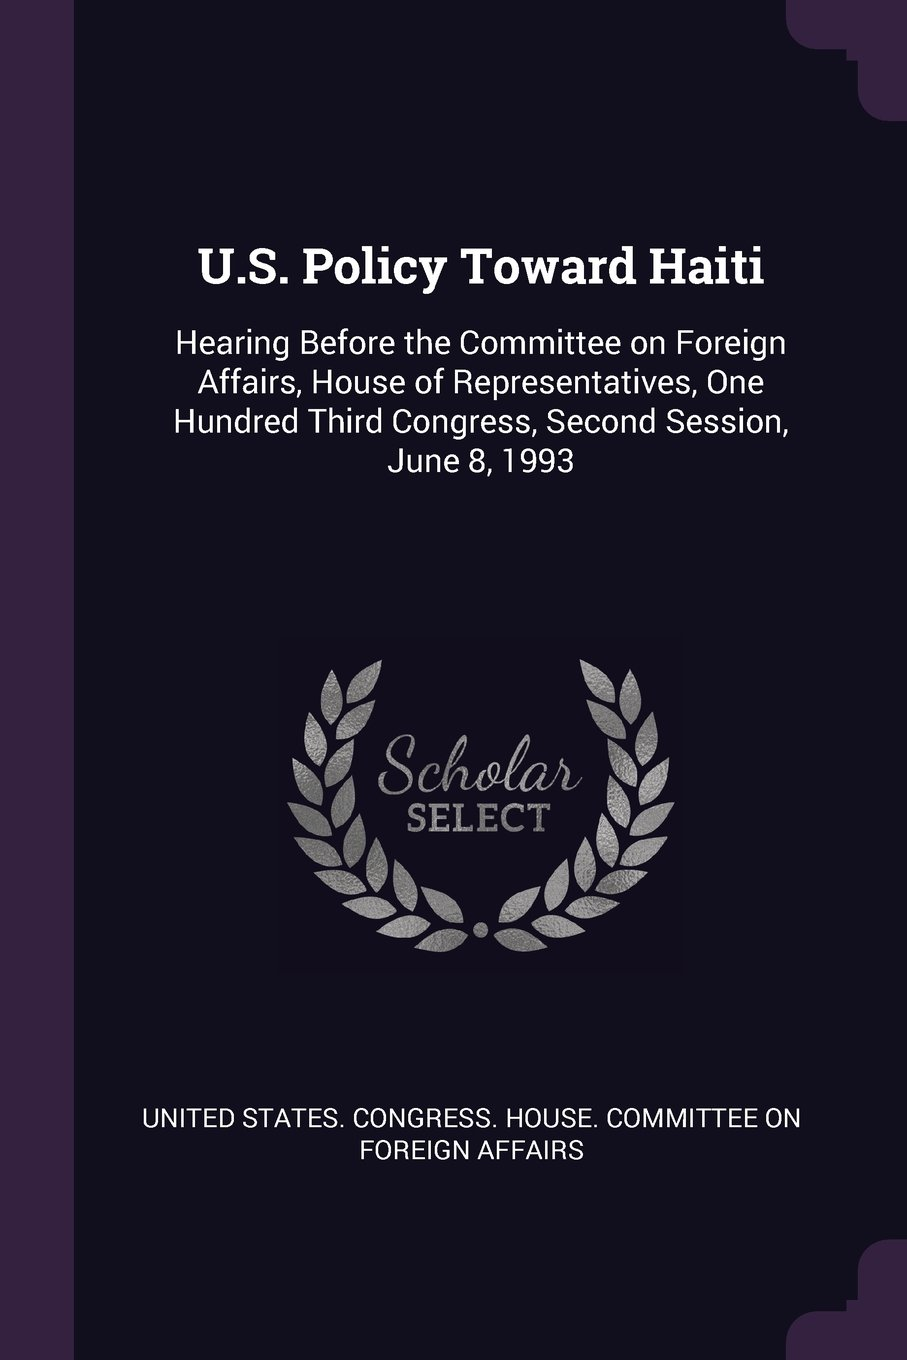 U.S. Policy Toward Haiti: Hearing Before the Committee on Foreign Affairs, House of Representatives, One Hundred Third Congress, Second Session, June 8, 1993